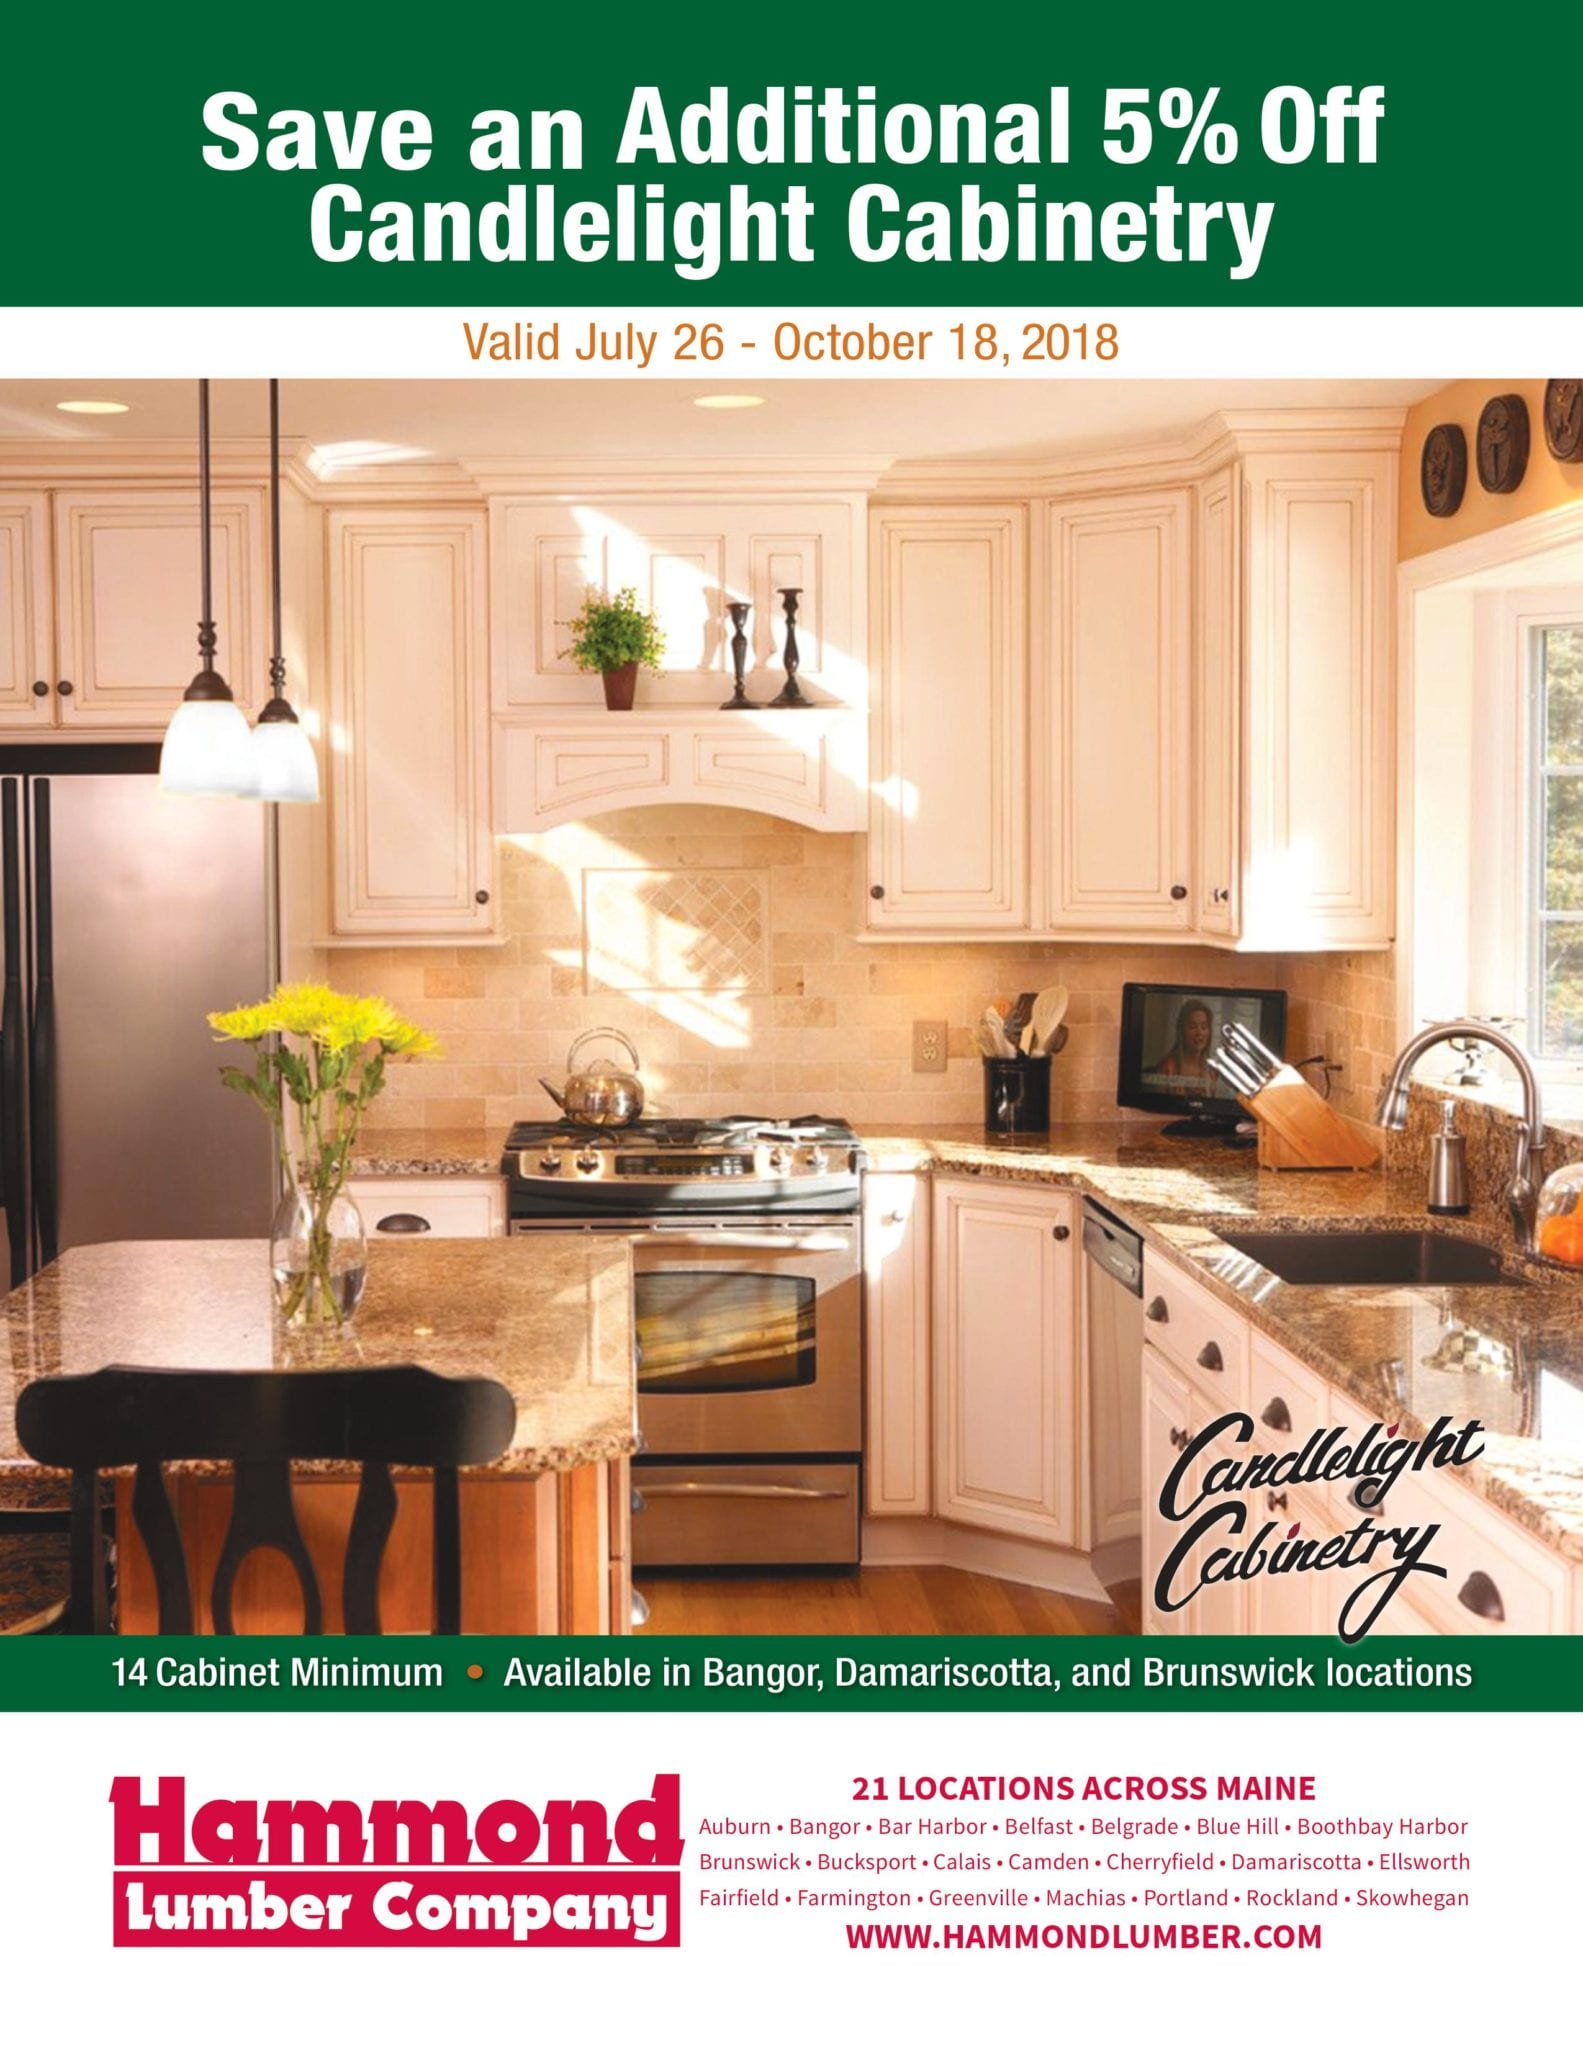 Candlelight Cabinetry Savings Flyer Hammond Lumber